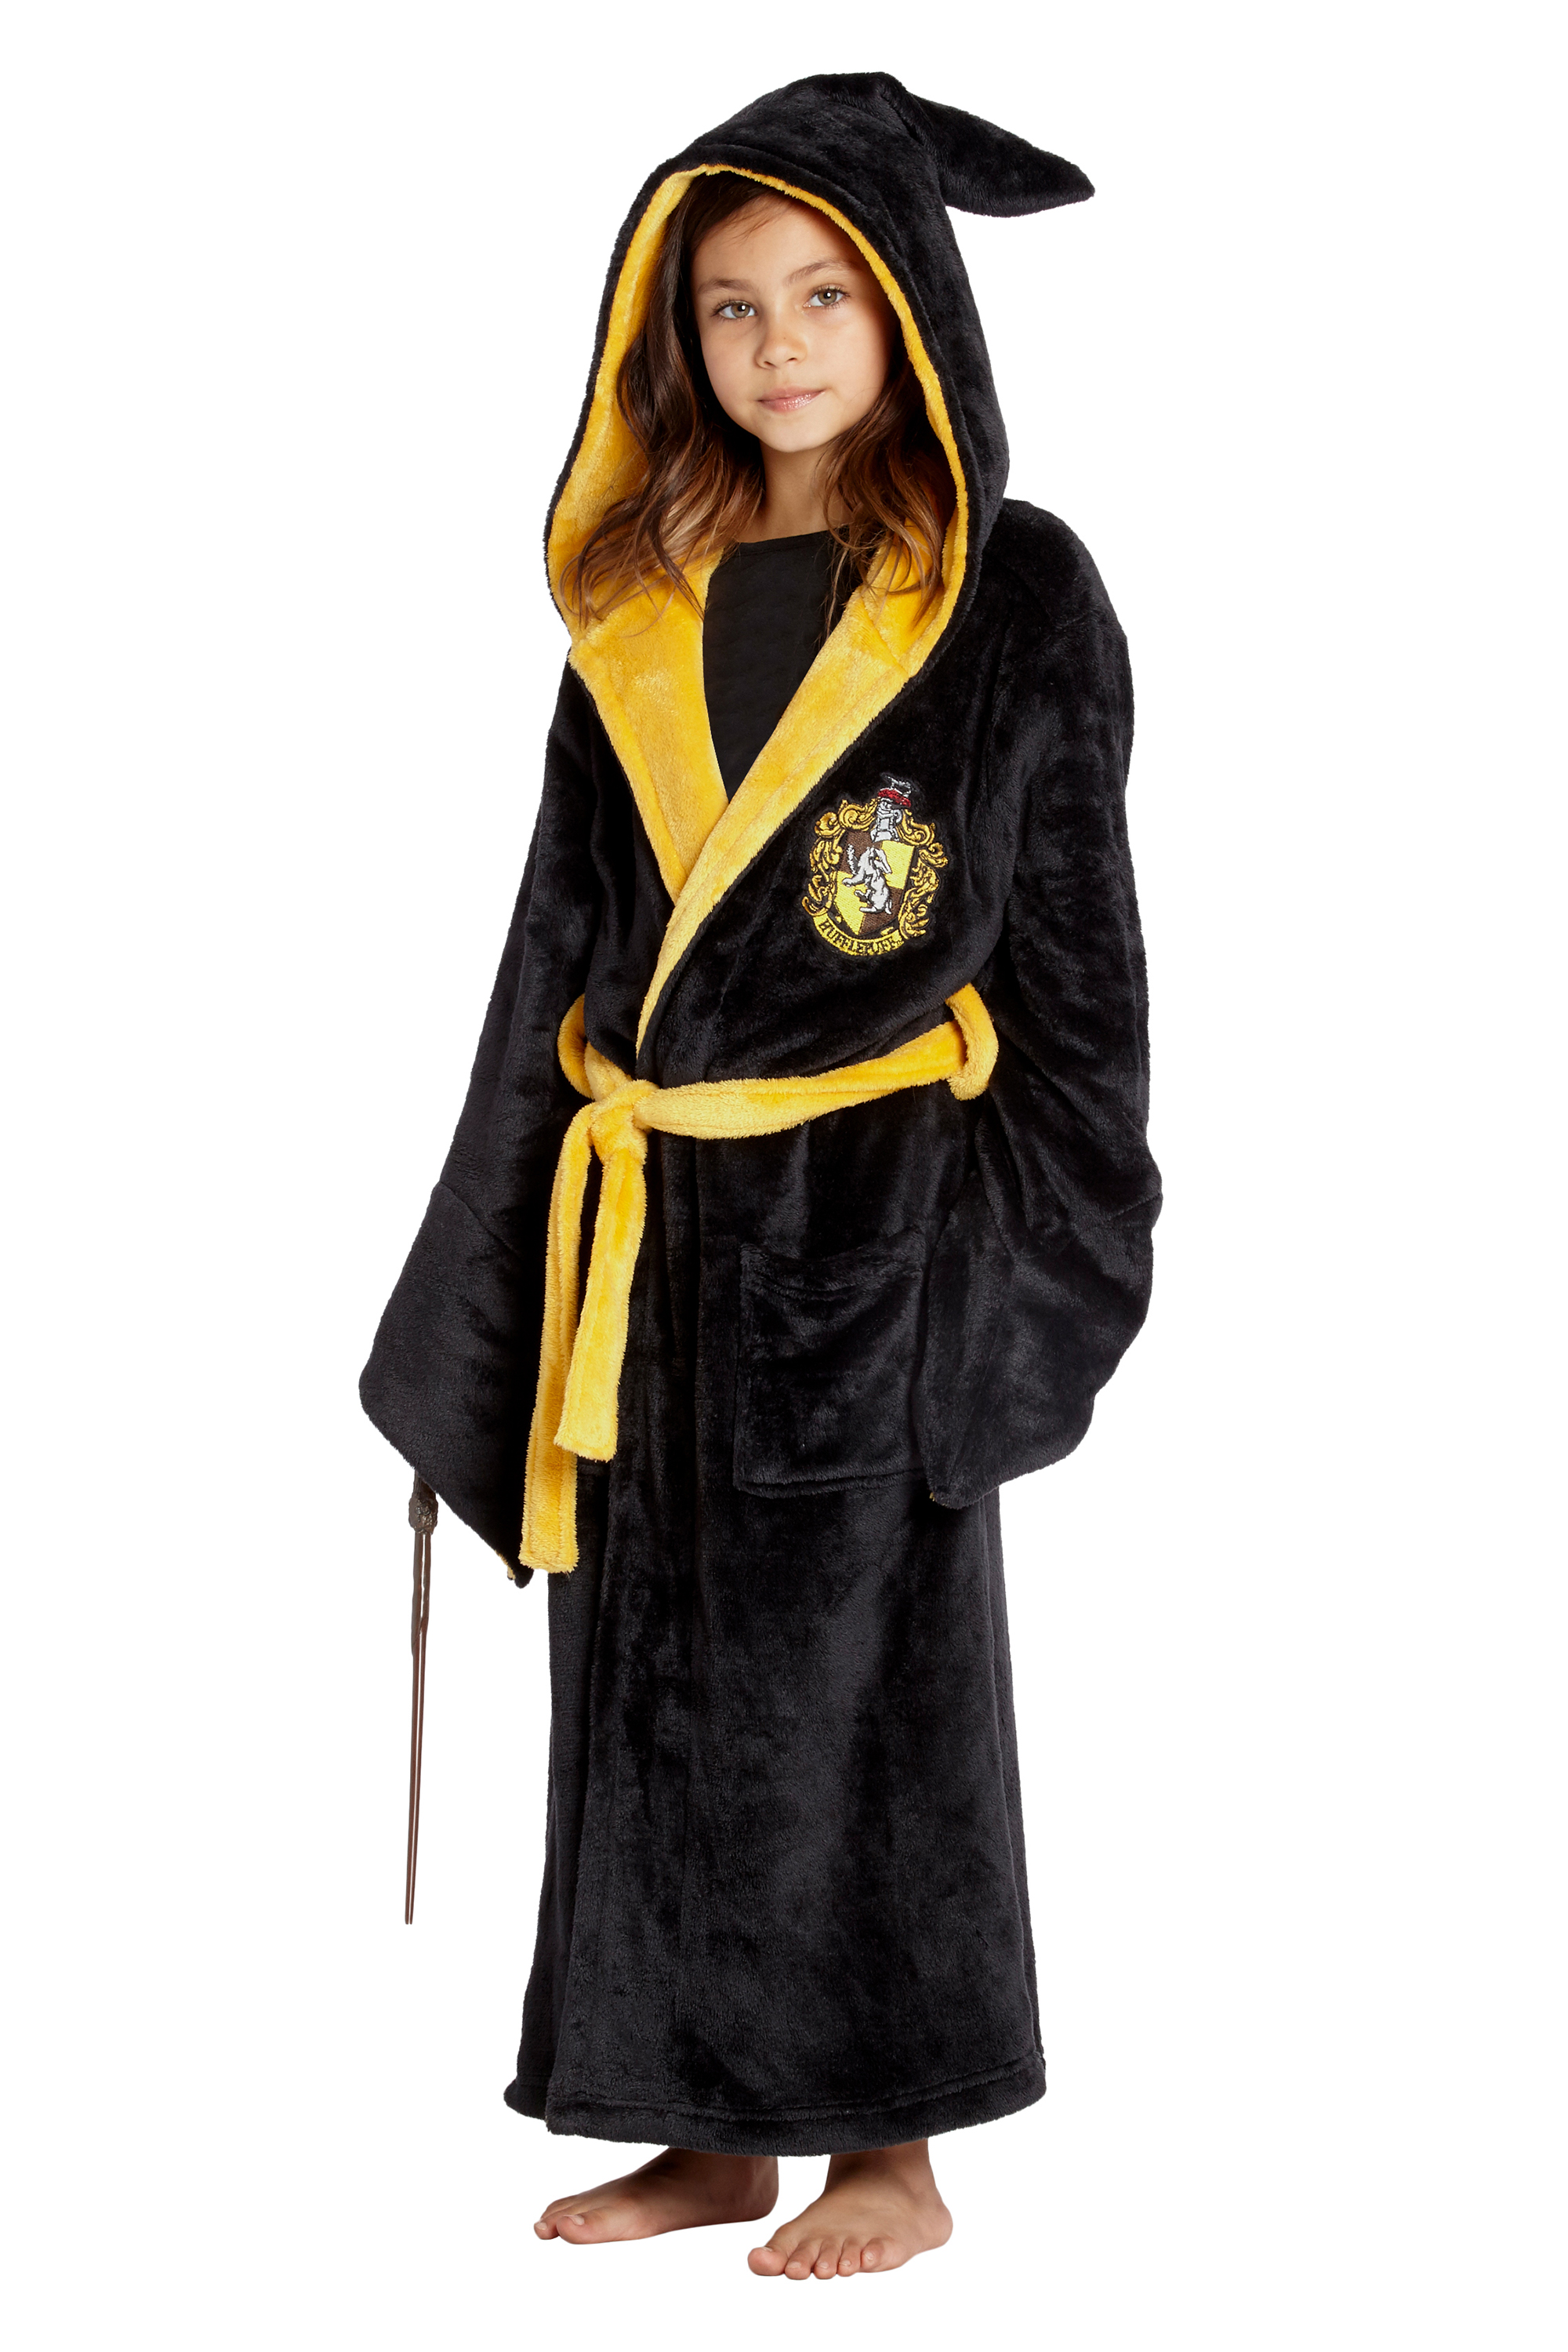 Harry Potter Costume Kids Plush Robe Hogwarts Houses Gryffindor, Ravenclaw,  Hufflepuff, Slytherin   Walmart.com